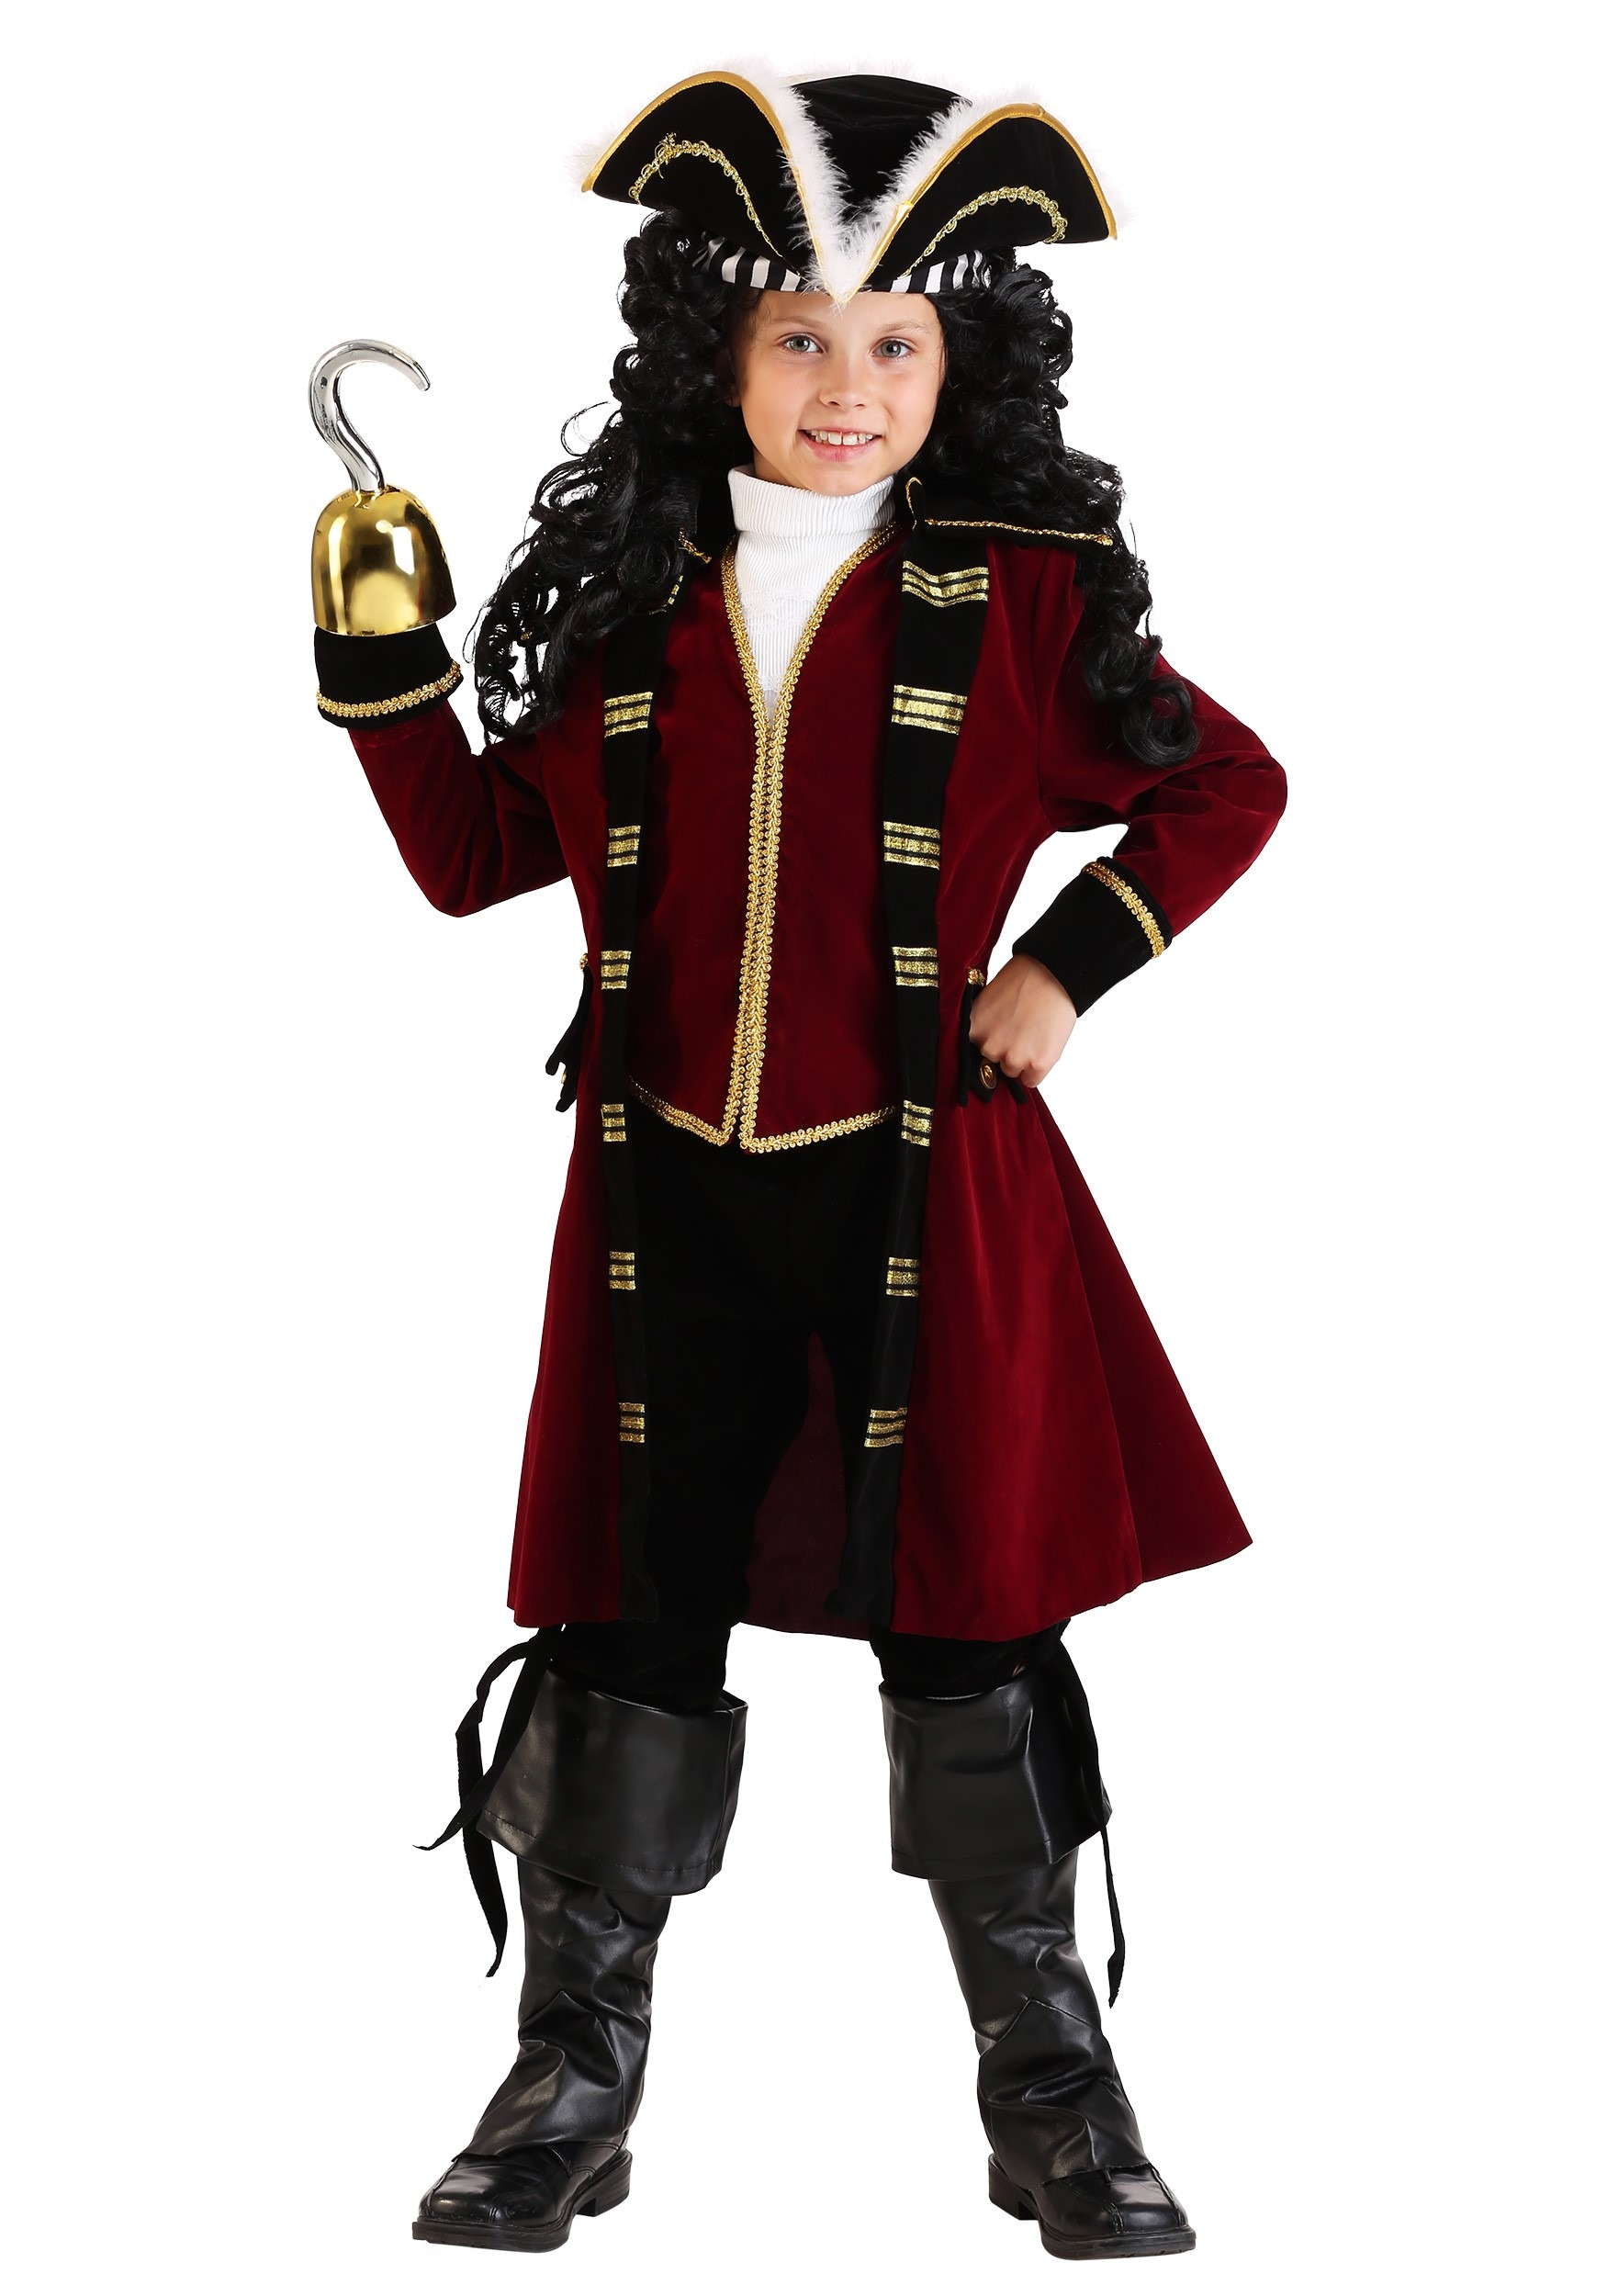 Boy's Pirate Costumes - Pirate Costume Boys Halloween